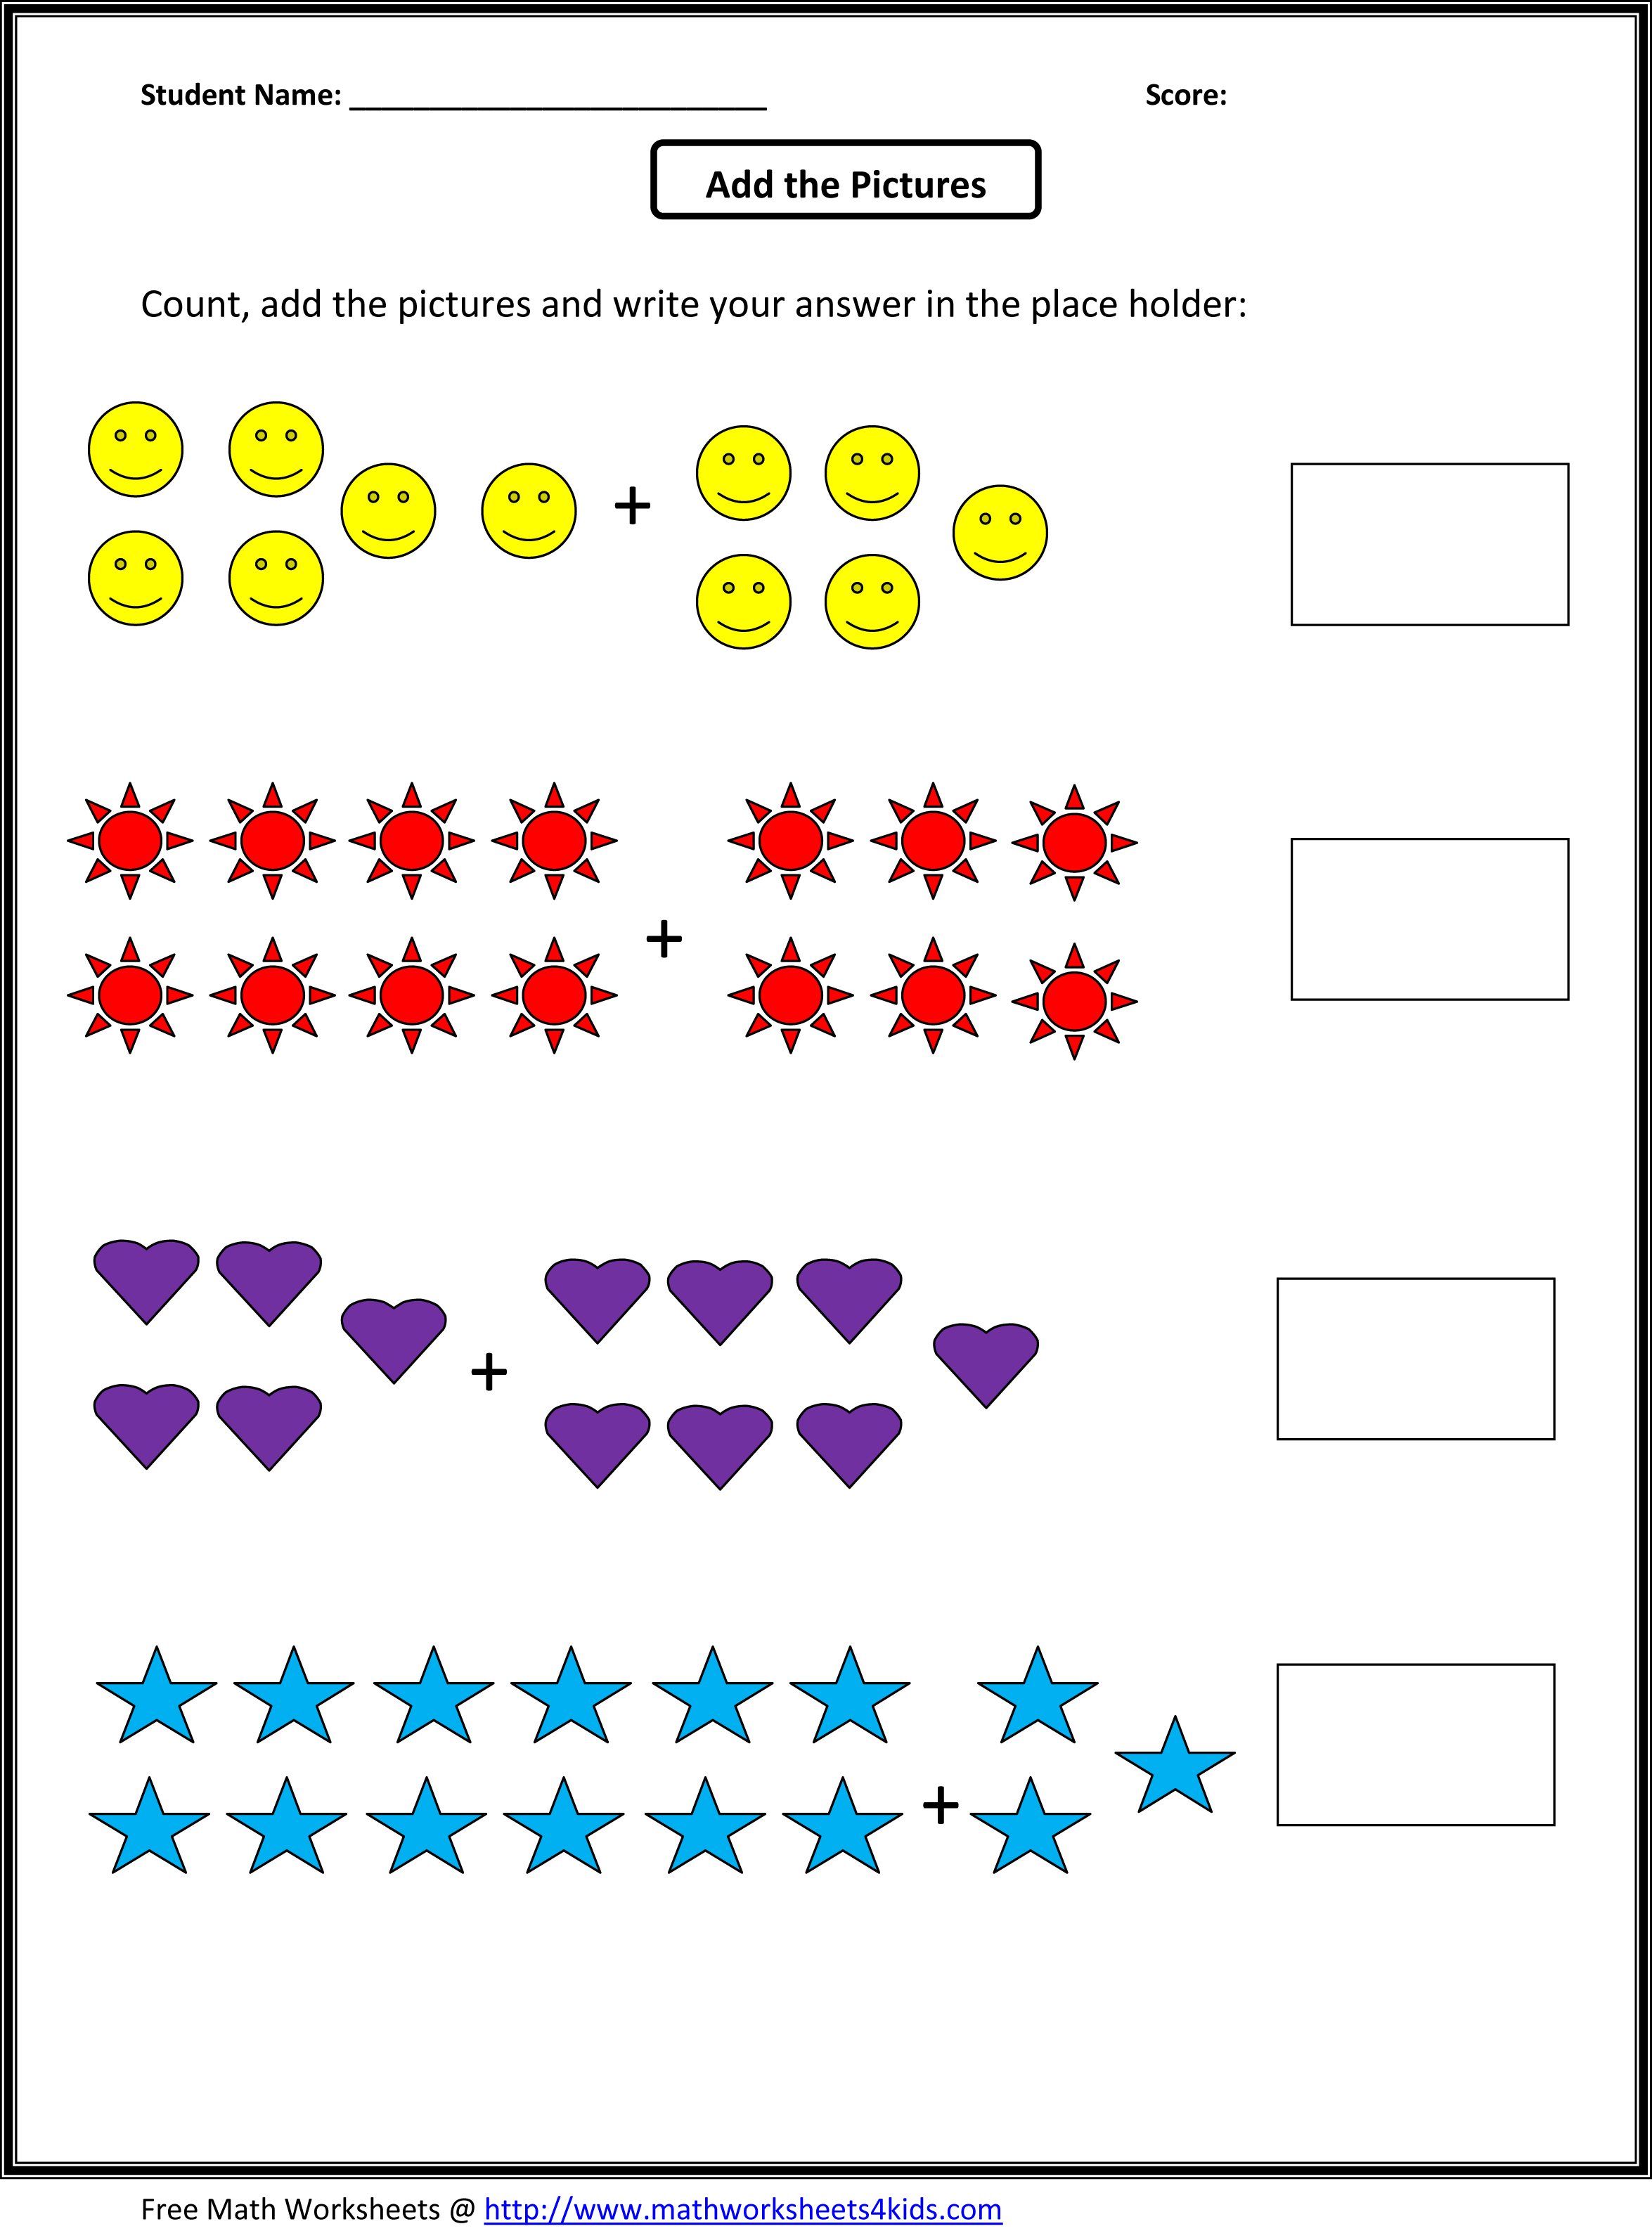 Weirdmailus  Pleasing Grade  Maths Worksheet  Reocurent With Extraordinary Math Worksheets For St Grade Free  Reocurent With Beauteous Preschool Alphabet Writing Worksheets Also Kindergarten Worksheet Math In Addition Indefinite And Reflexive Pronouns Worksheet And Worksheet For Alphabet As Well As Synonyms Practice Worksheets Additionally Maths Multiplication Worksheets For Class  From Reocurentcom With Weirdmailus  Extraordinary Grade  Maths Worksheet  Reocurent With Beauteous Math Worksheets For St Grade Free  Reocurent And Pleasing Preschool Alphabet Writing Worksheets Also Kindergarten Worksheet Math In Addition Indefinite And Reflexive Pronouns Worksheet From Reocurentcom